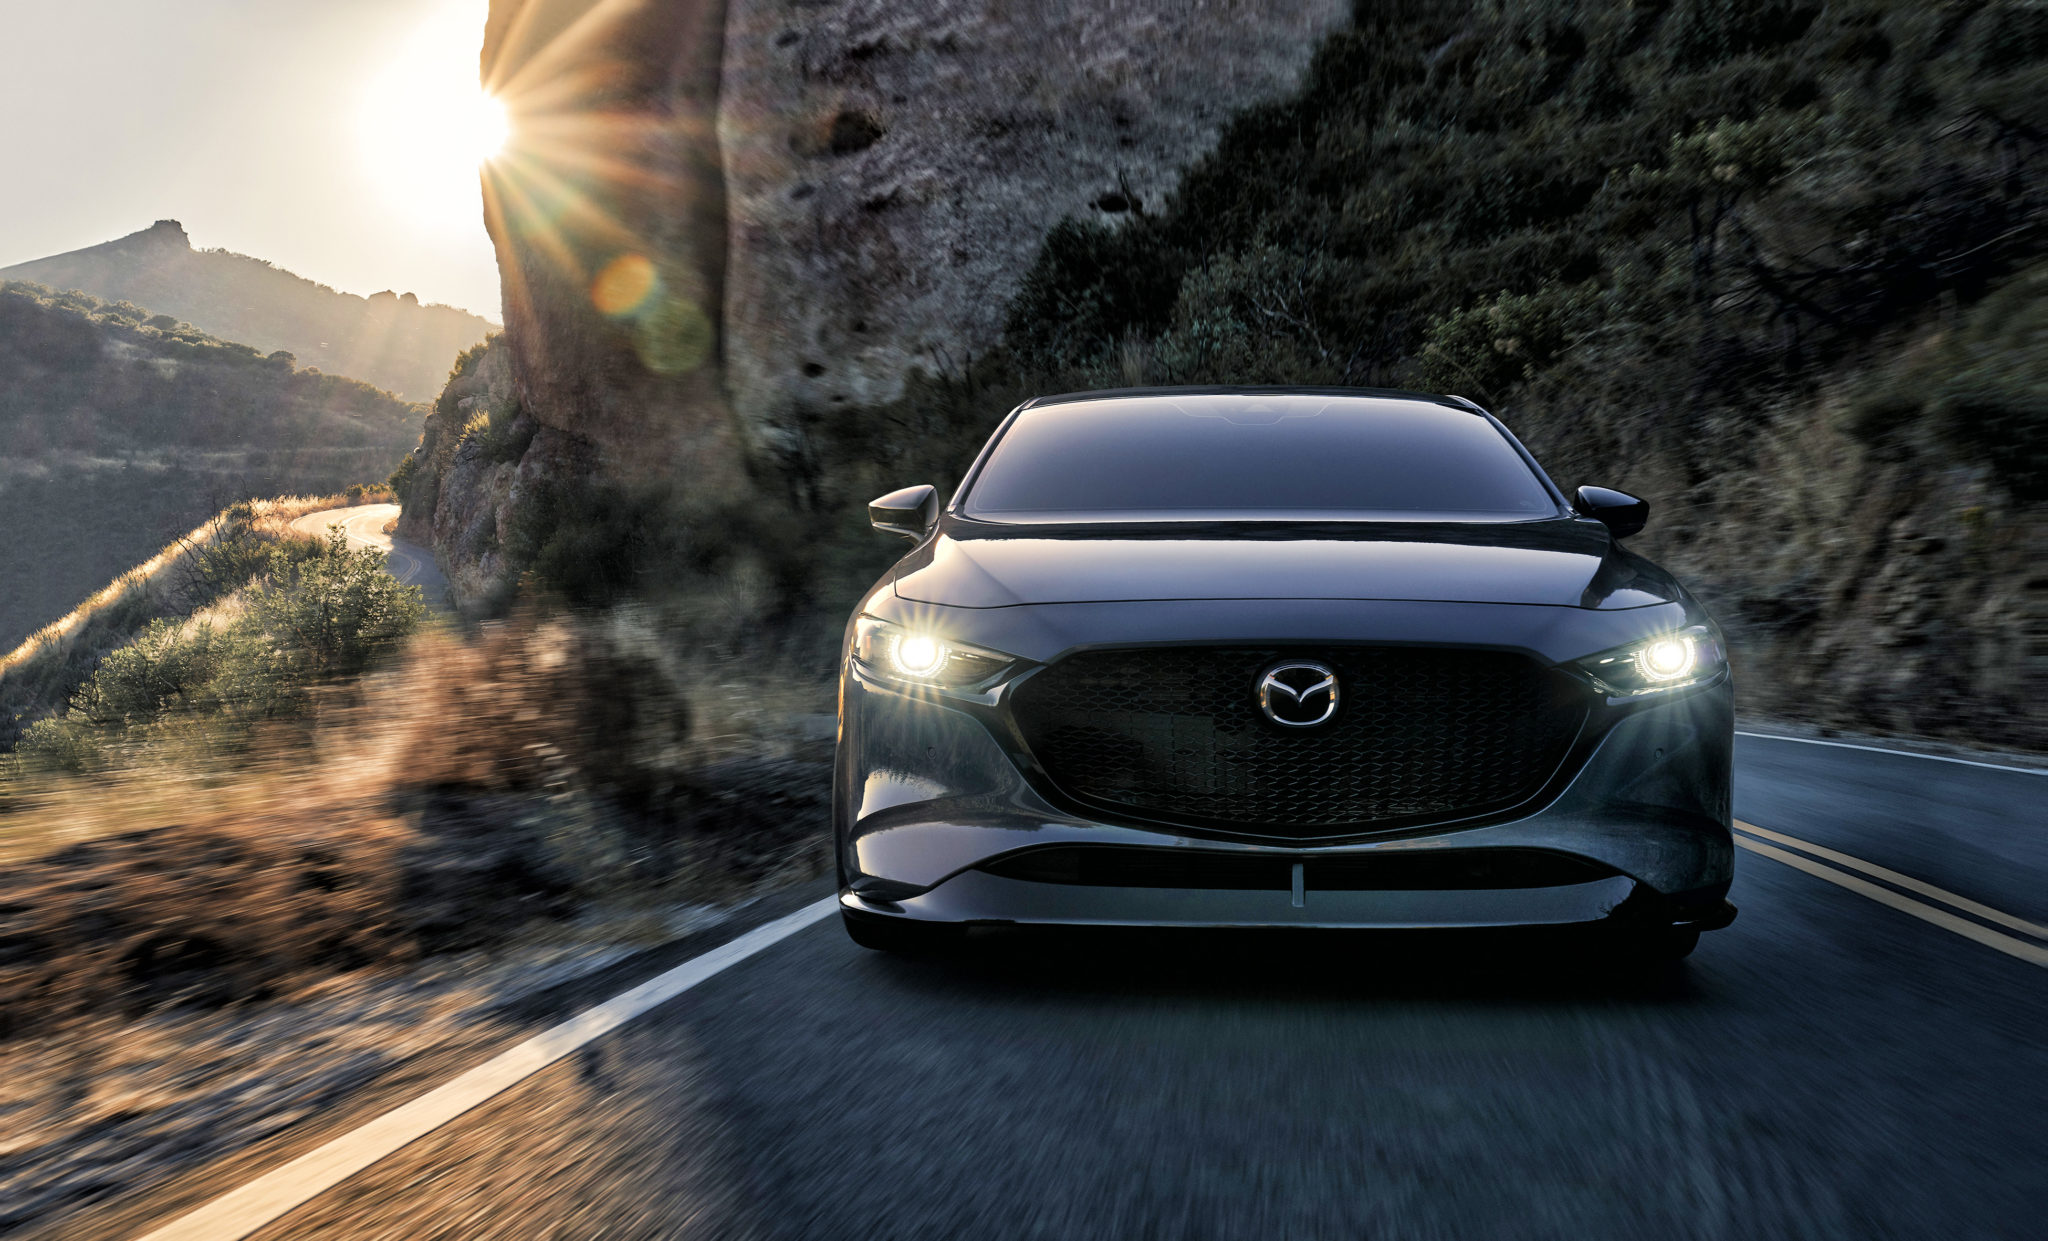 MAZDA3 2.5 TURBO AND ACCESSORIES REVEALED